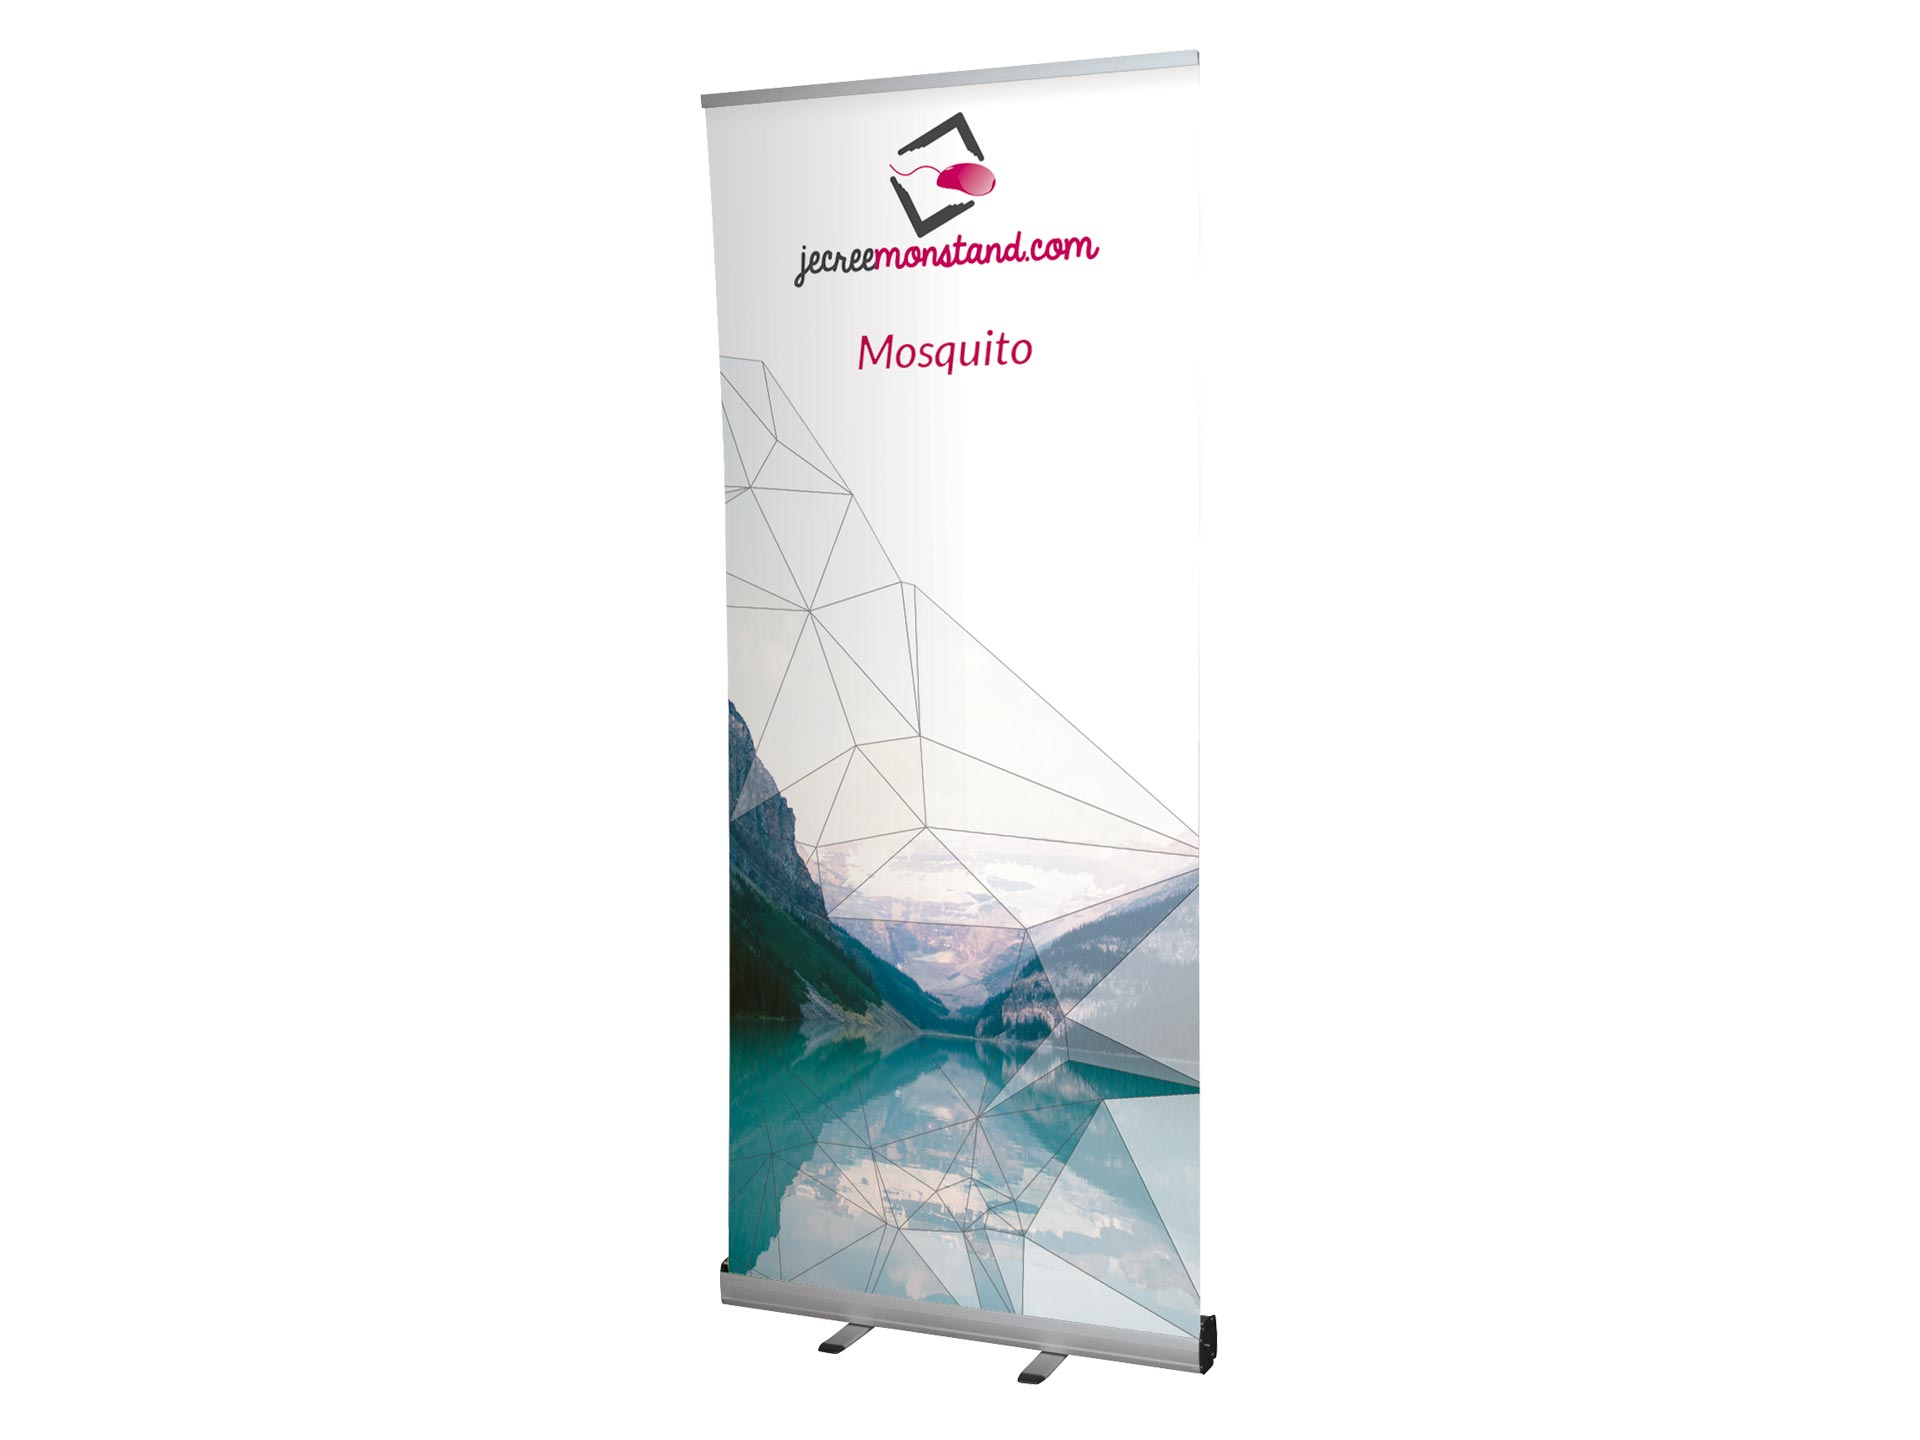 Roll-up Mosquito pour stand exposants, salons et foires